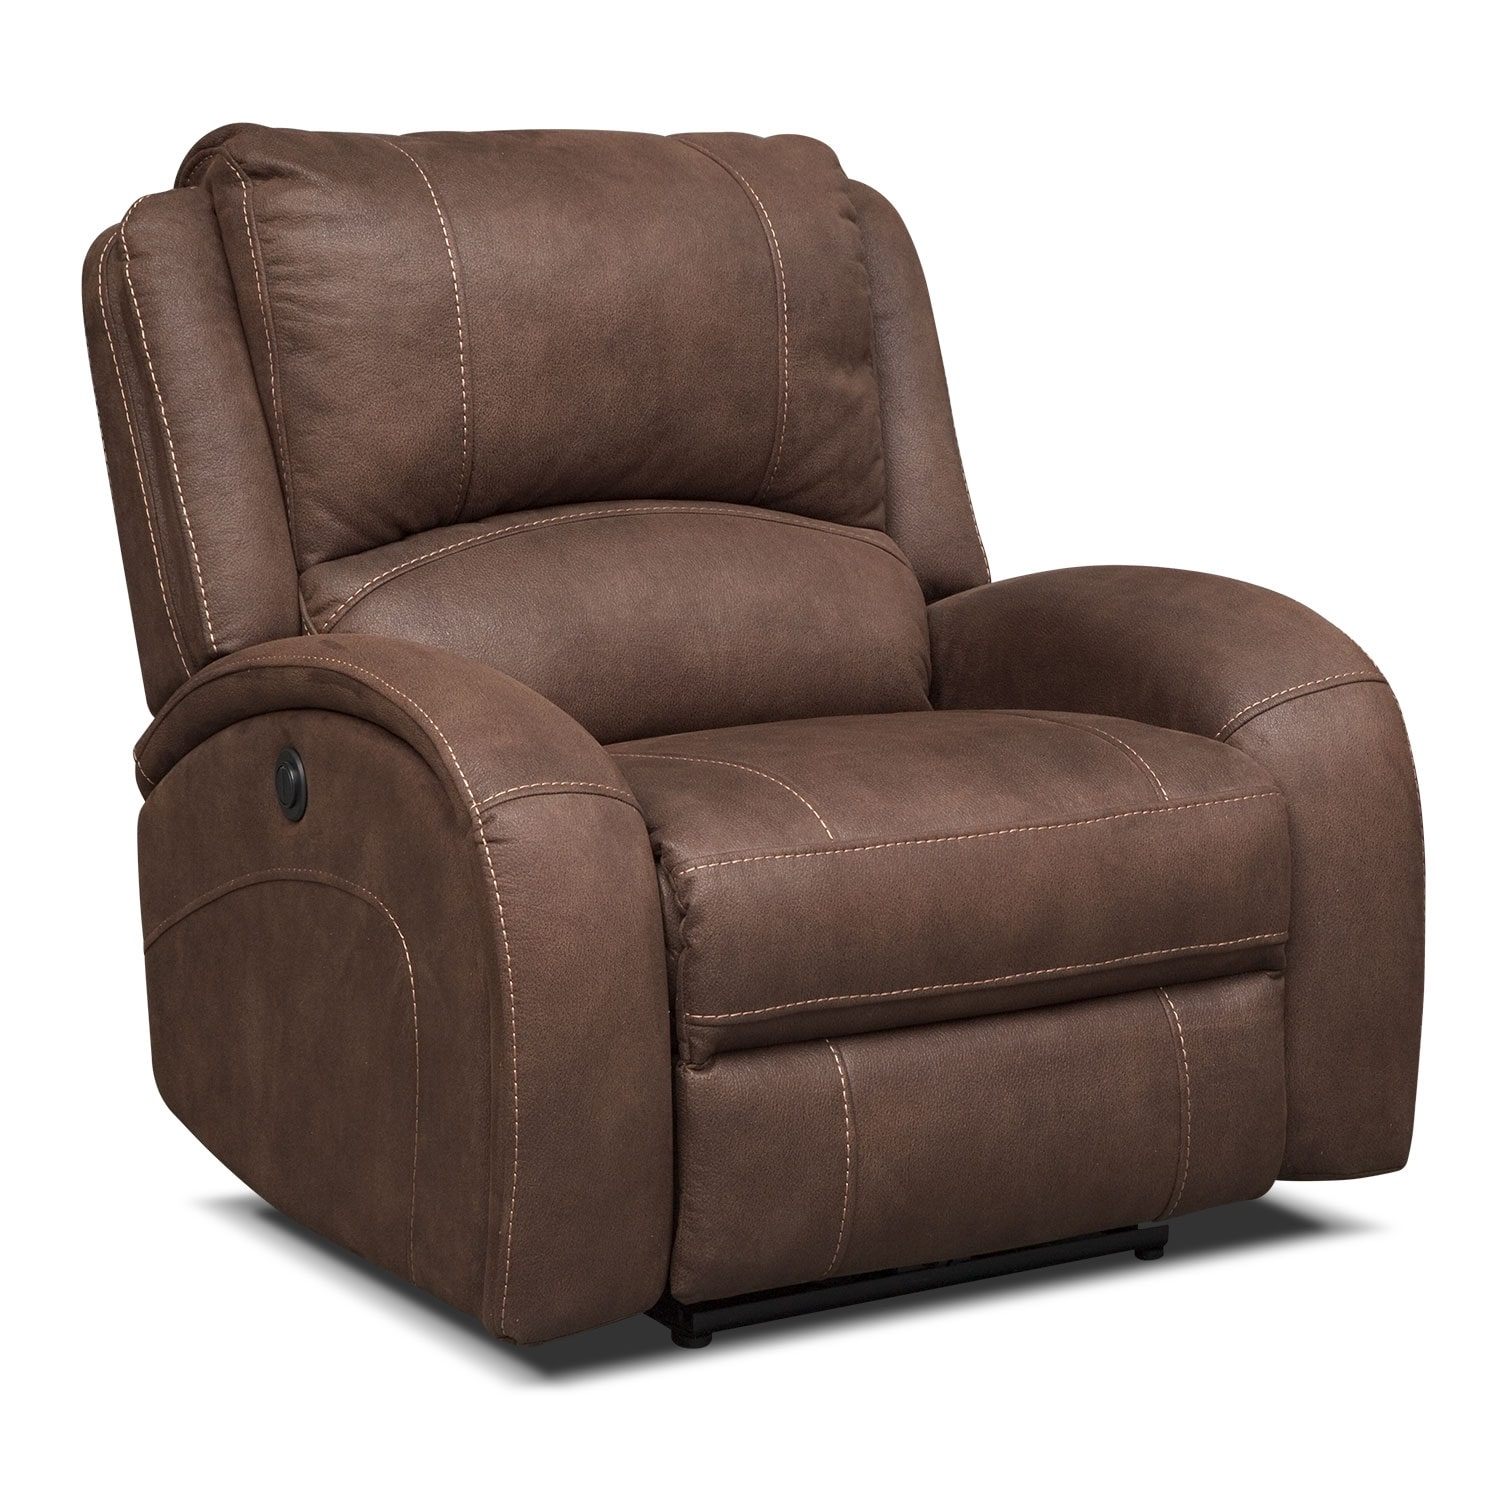 Living Room Furniture - Ambrose Power Recliner